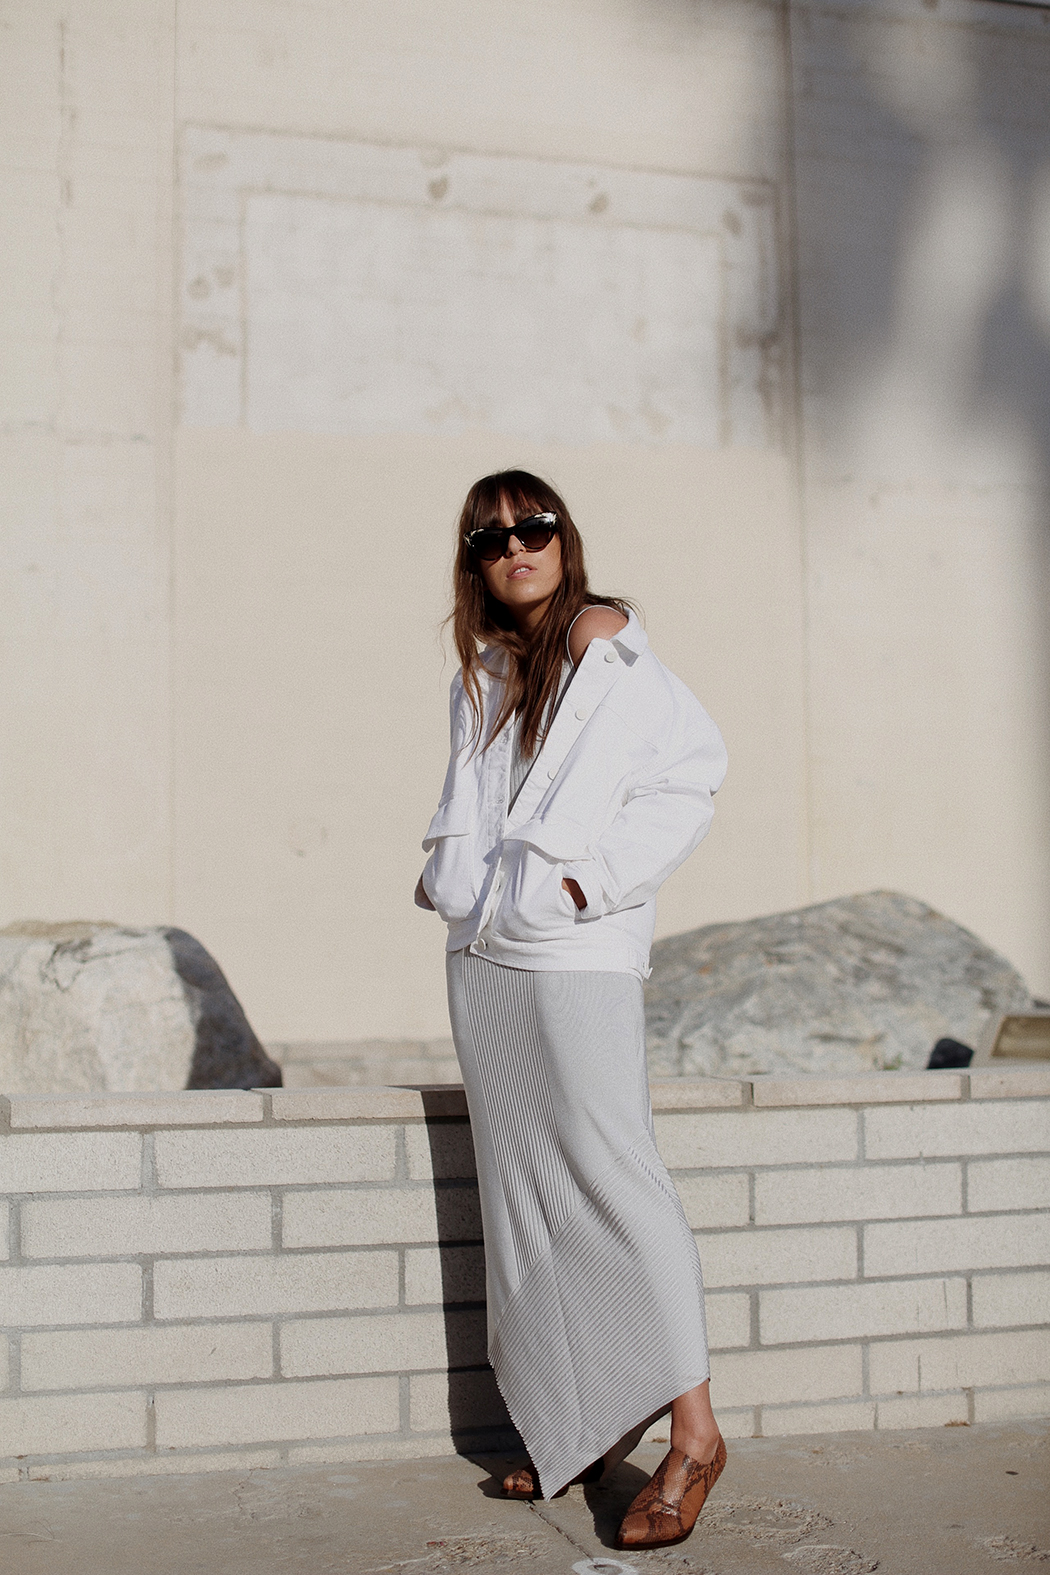 thedashingrider.filippa-k-grey-knit-dress-white-denim-jacket-gucci-cat-eye-sunglasses-vic-matie-boots-outfit-palm-springs-3